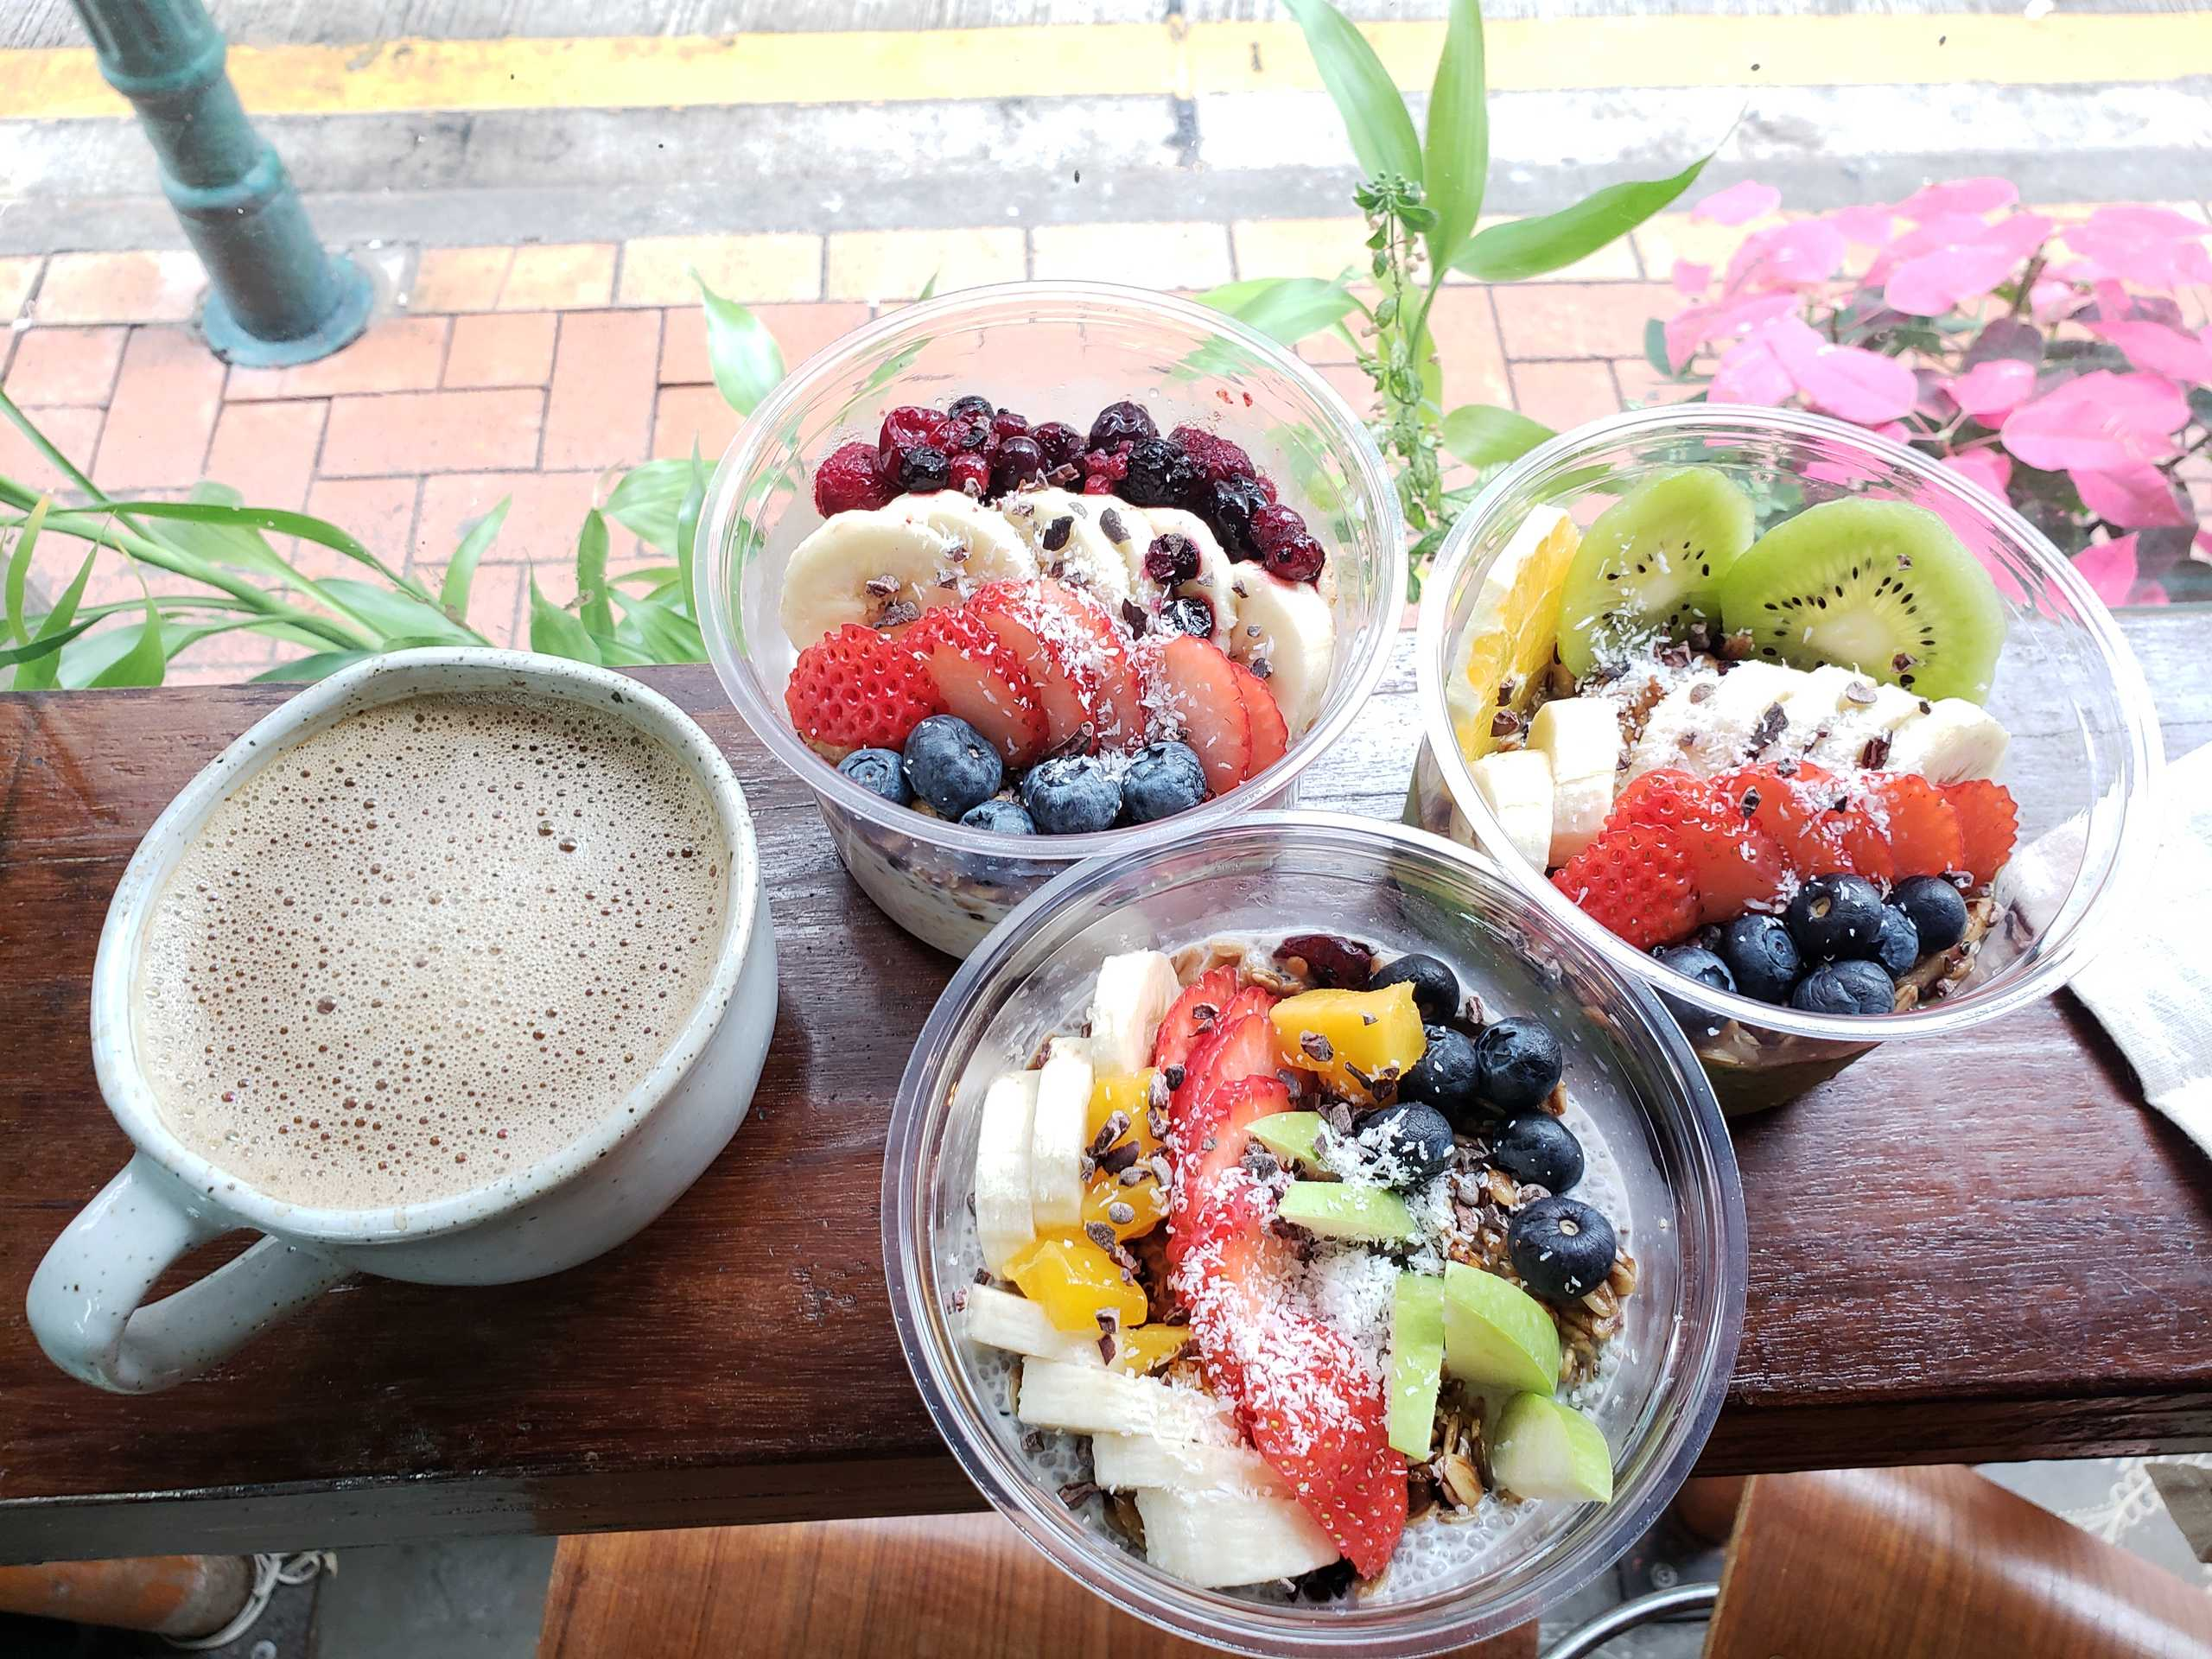 Blissful-carrot_breakfast_smoothie-bowls_coffee_Best Places for Healthy Breakfasts in Macau